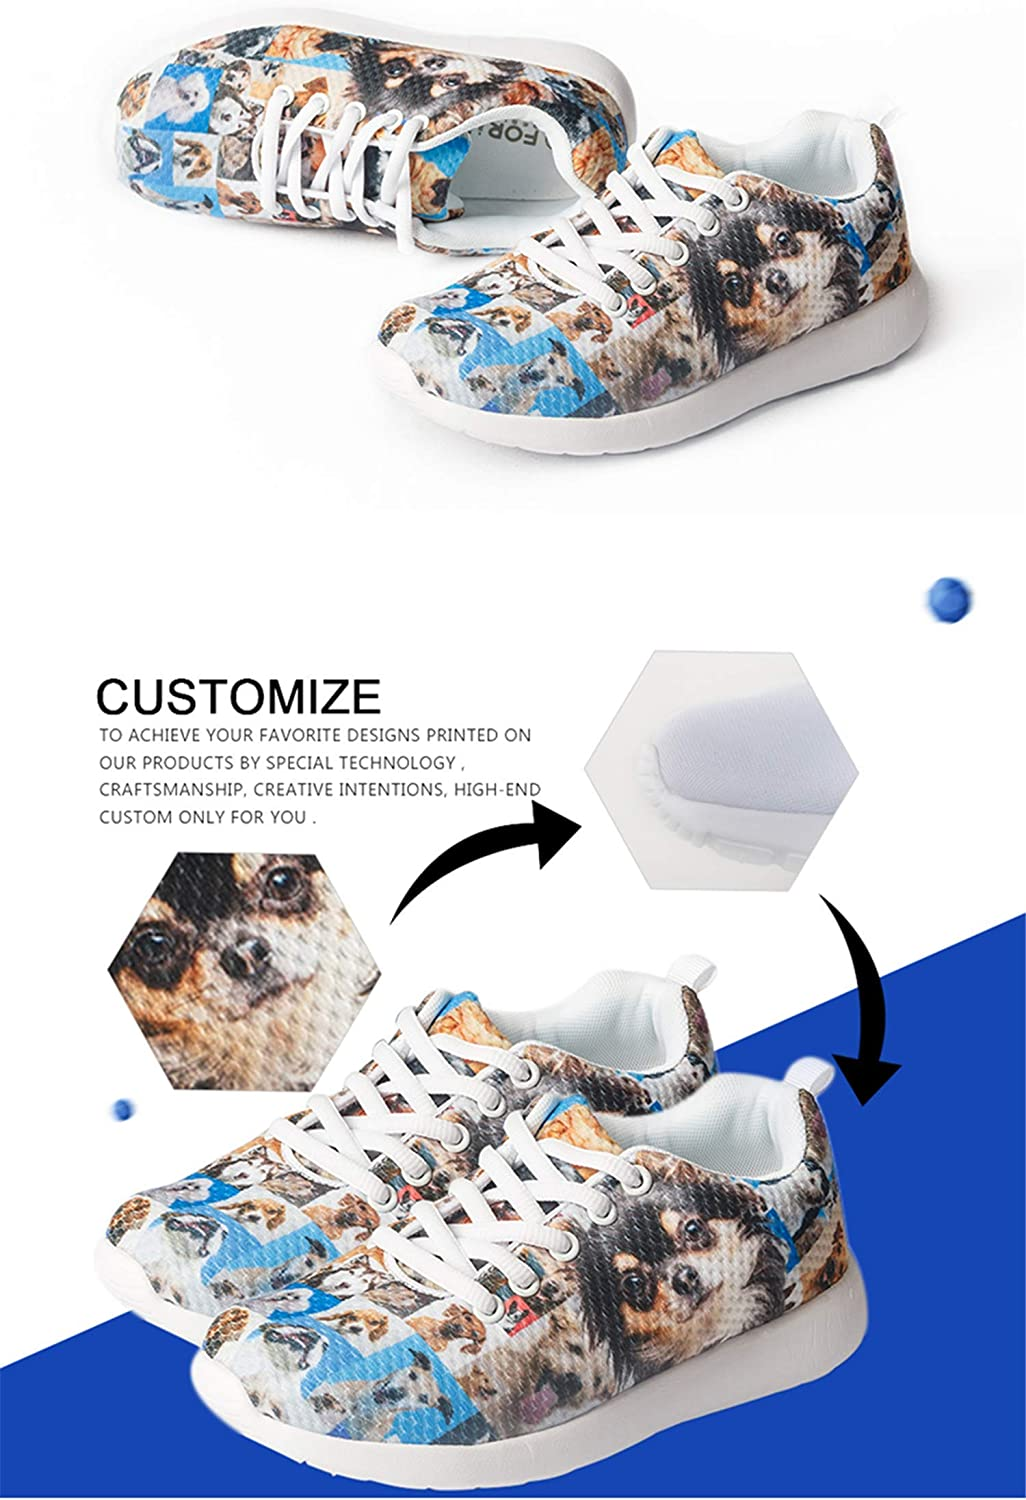 chaqlin Fashion Sneakers for Kids Boys Girls Sneakers Casual Running Shoes Footwear Galaxy Pattern Multi Colored